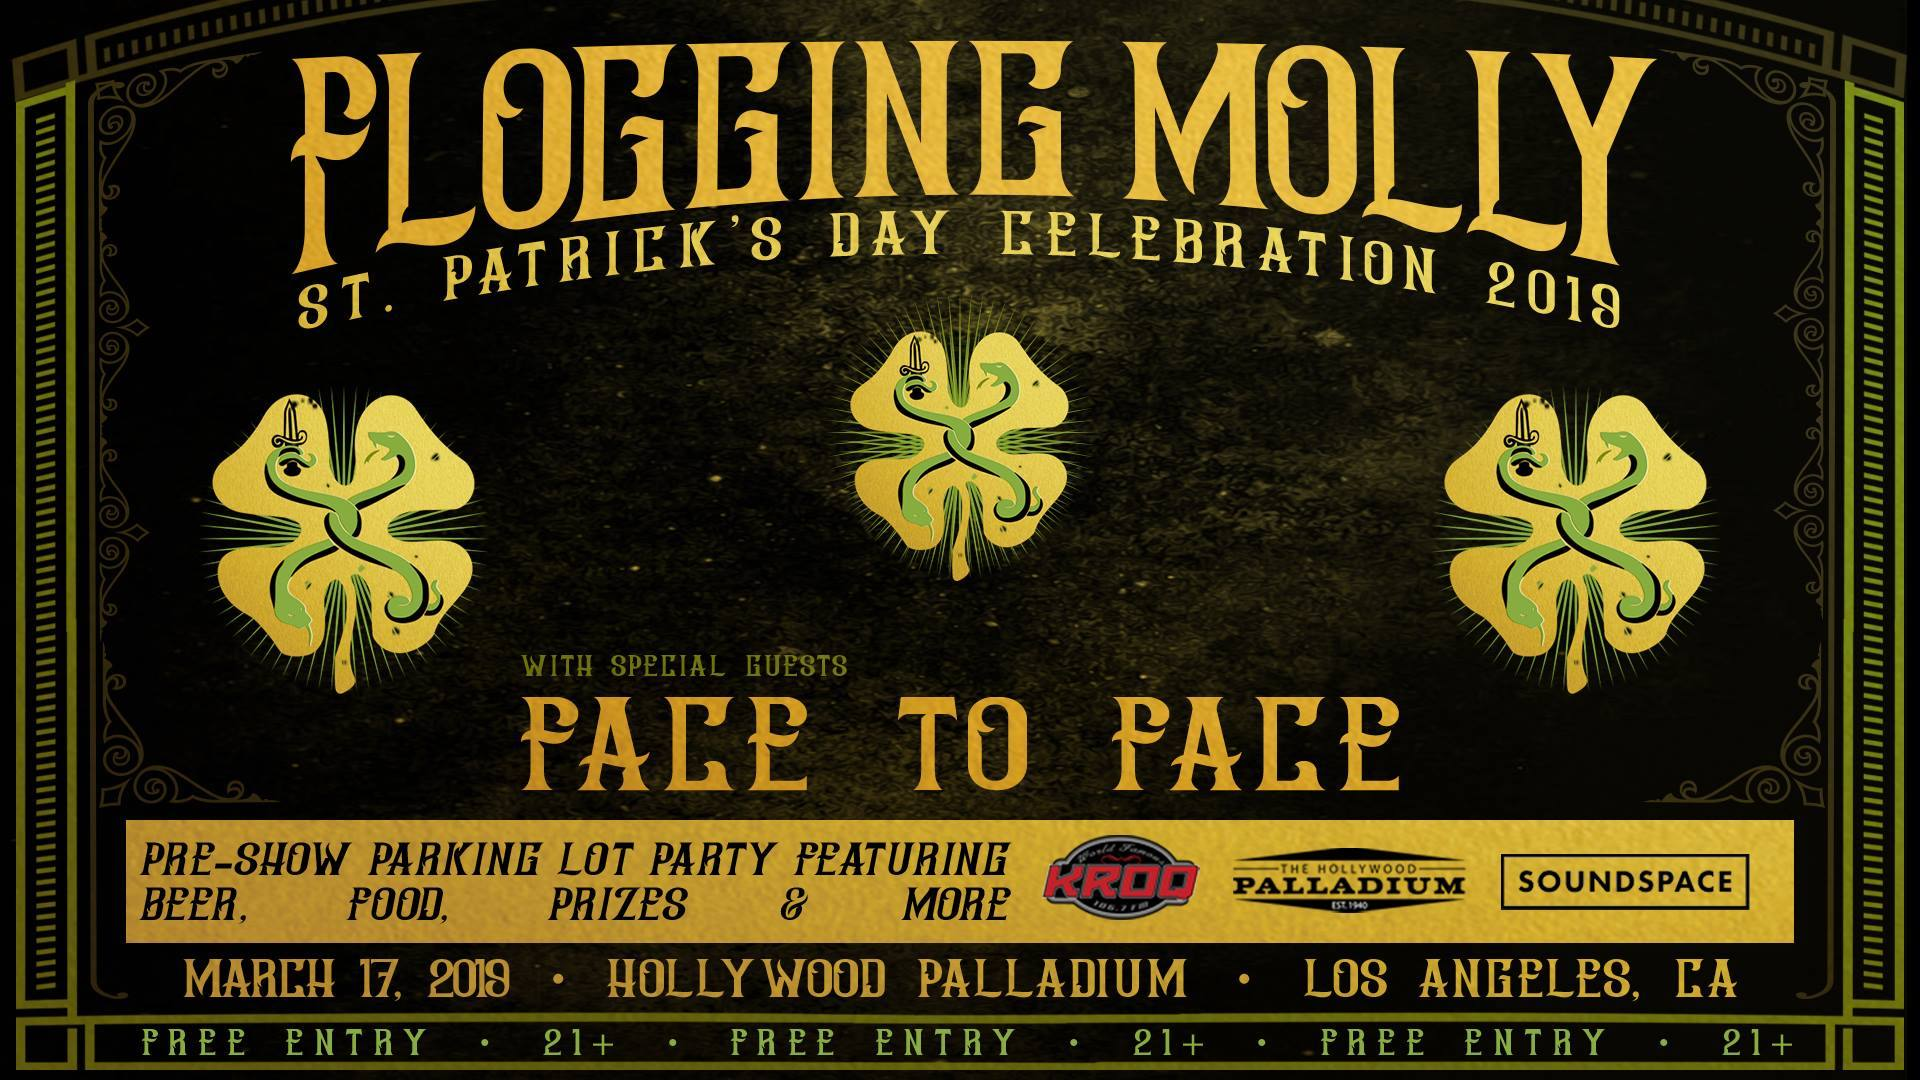 Flogging Molly St.Patrick's Day Block Party at the Hollywood Palladium